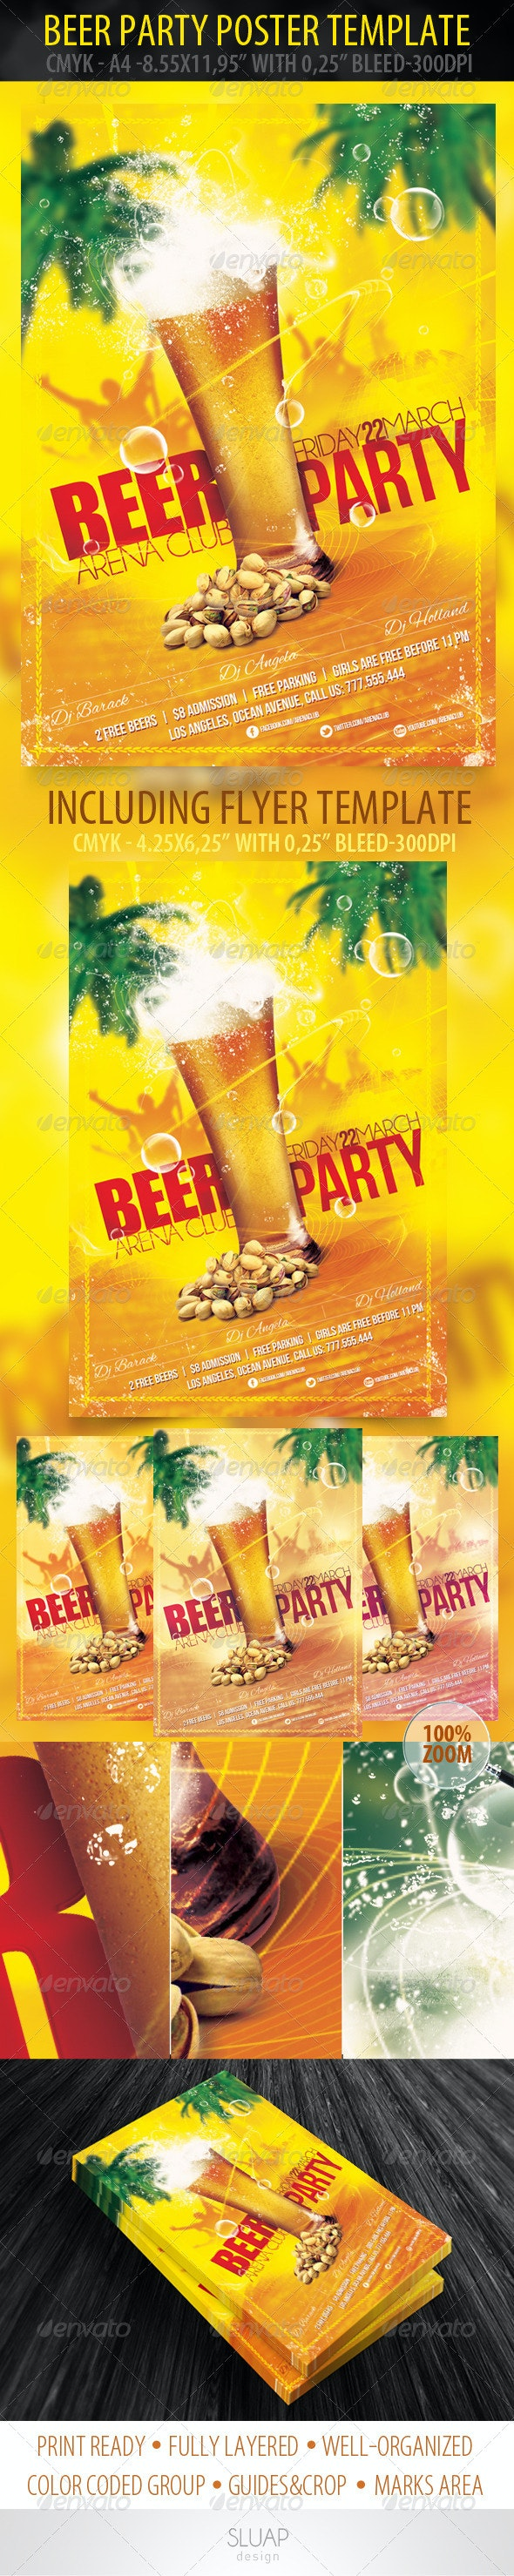 Beer Party Poster & Flyer Template - Events Flyers